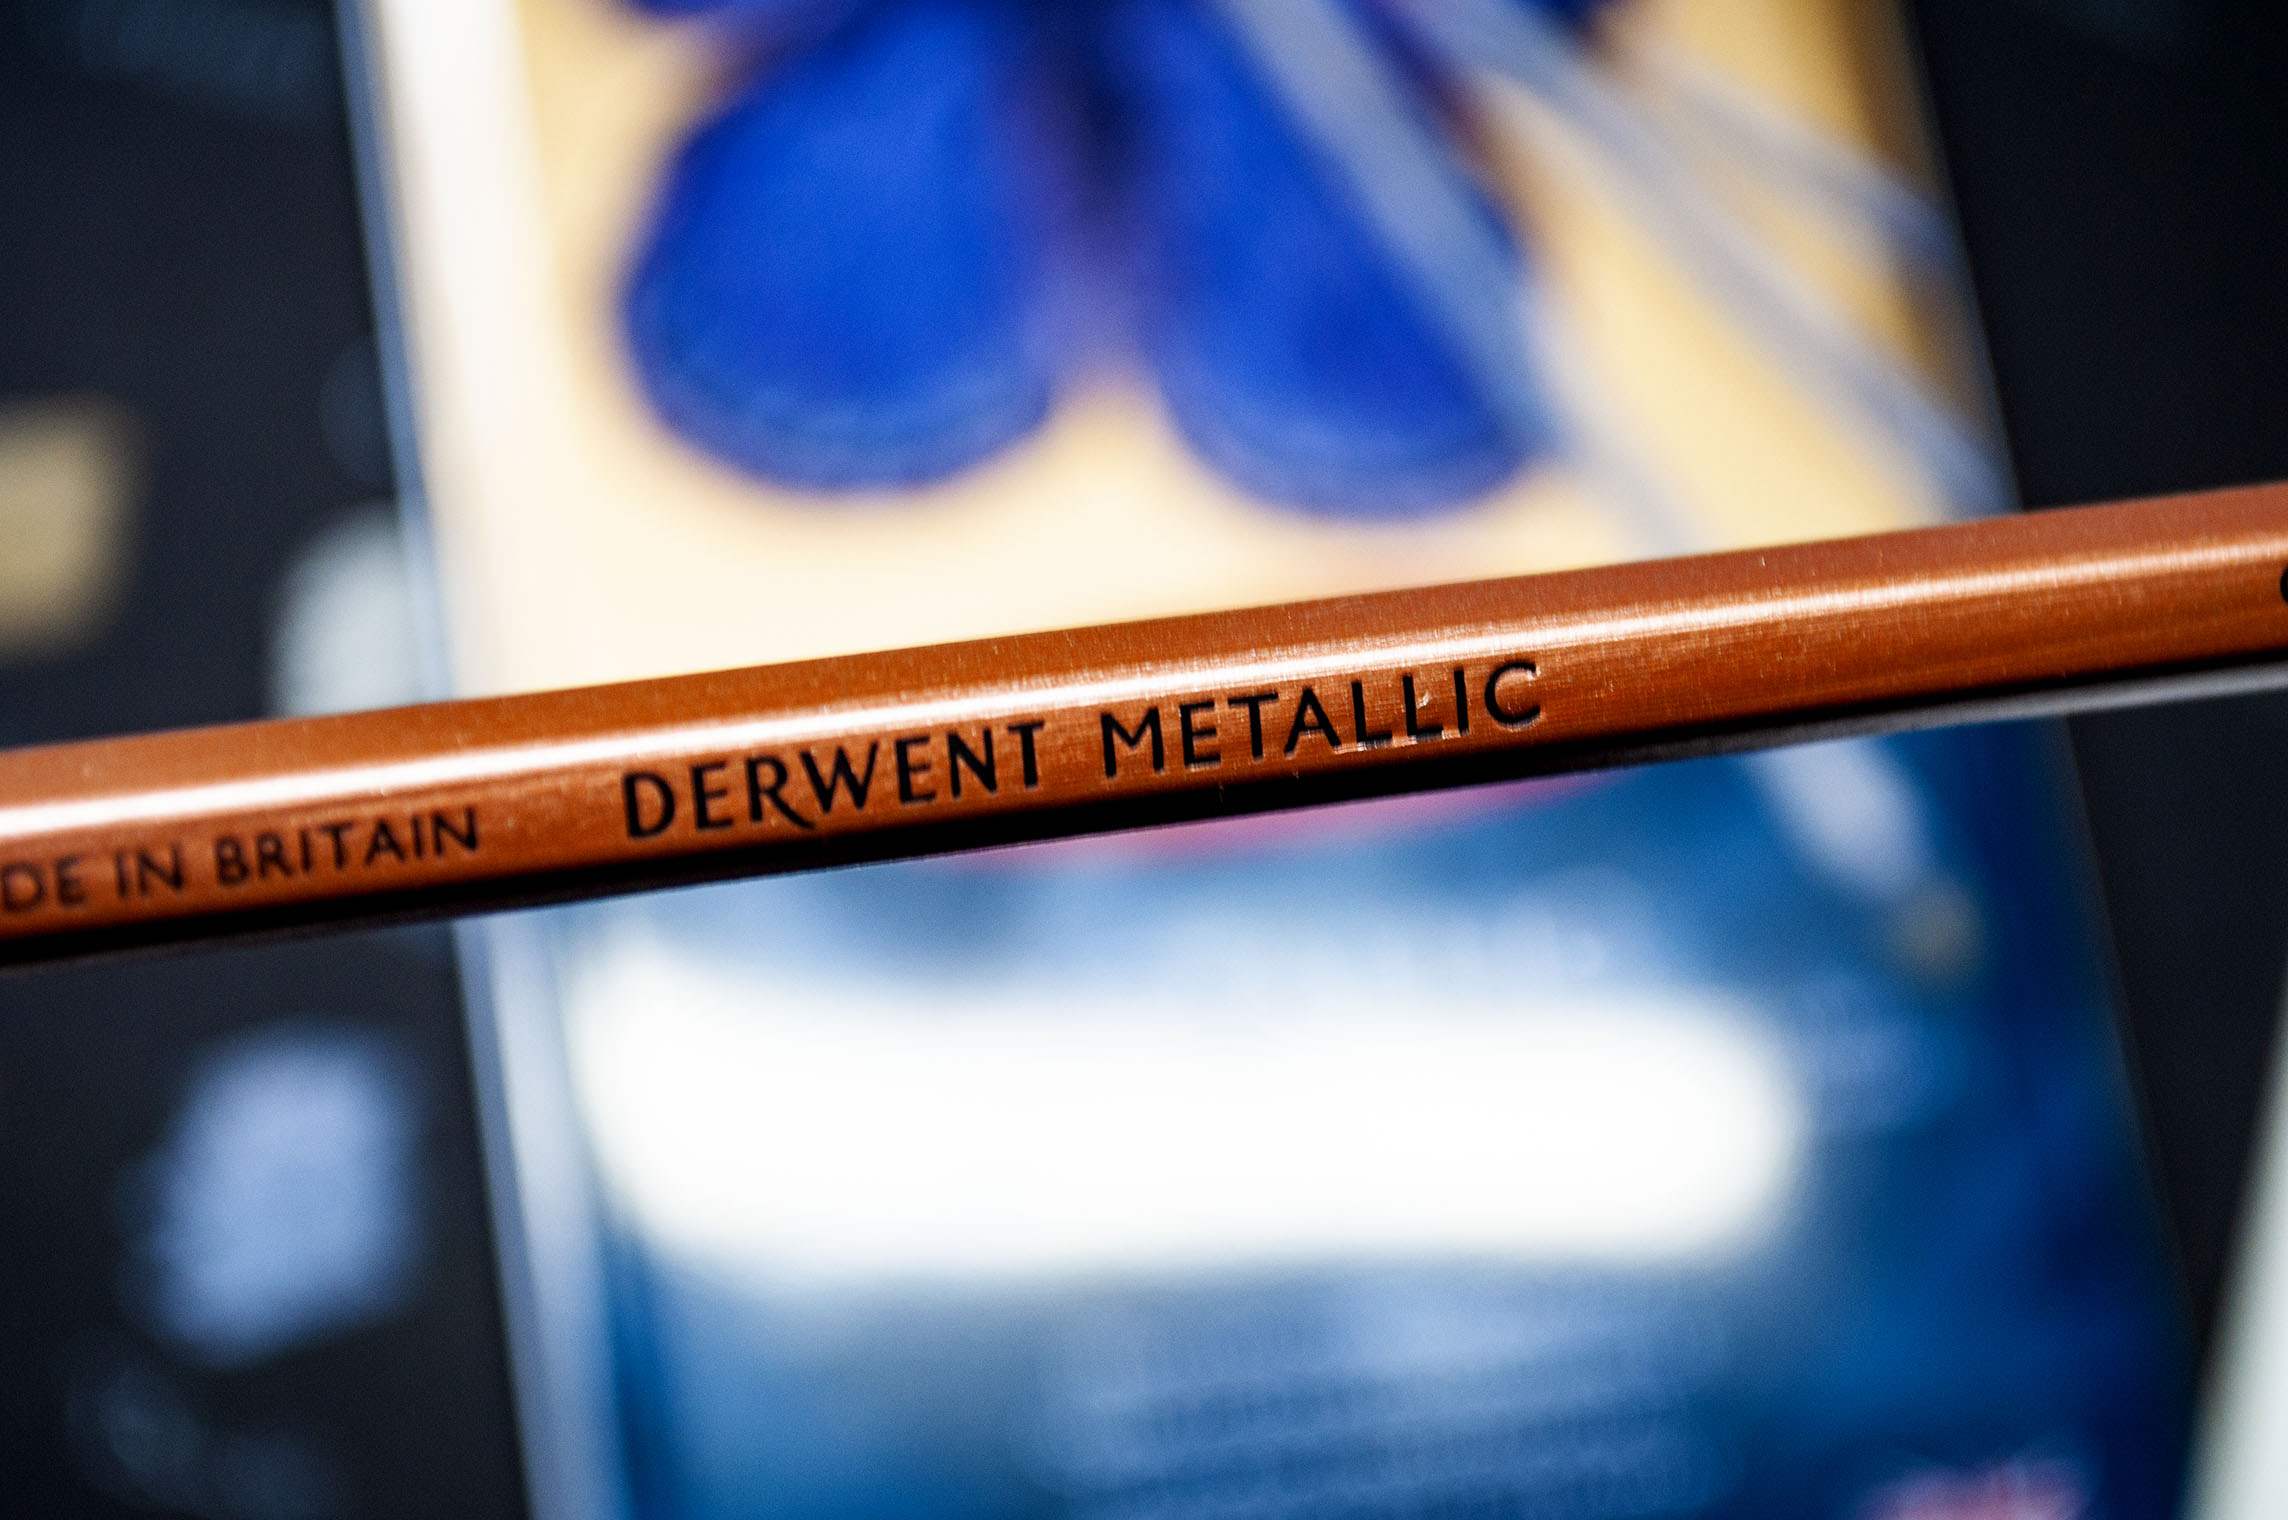 Derwent Metallic on Barrel .jpg